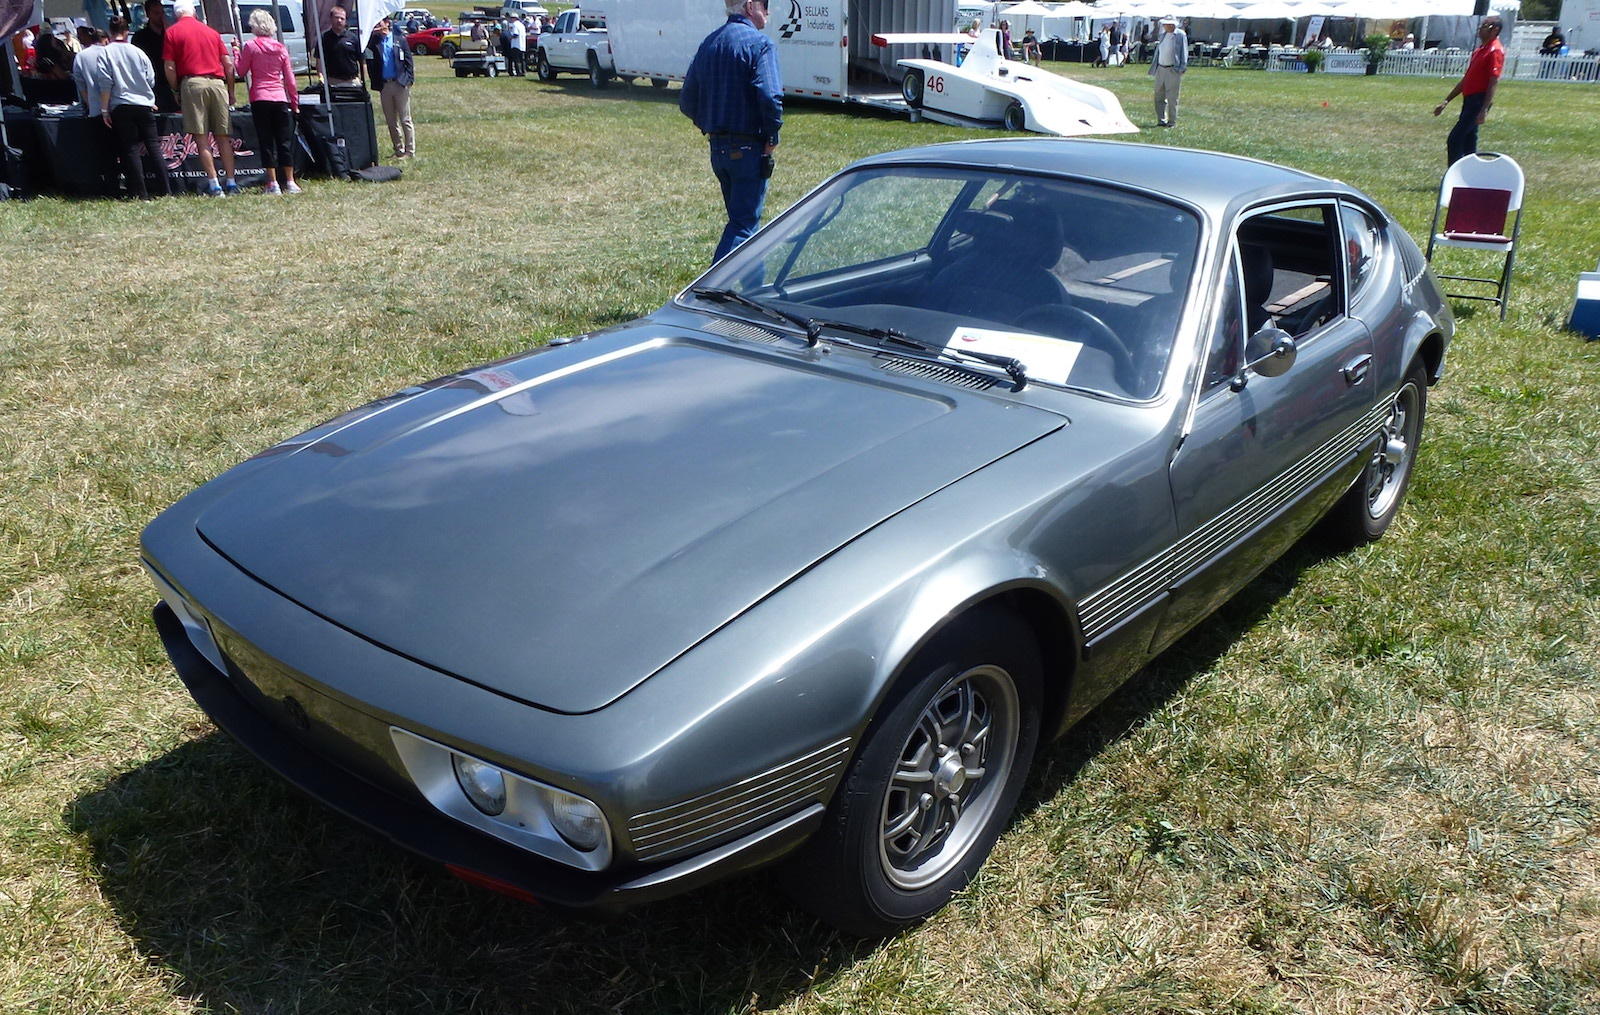 The Volkswagen SP2 - Designed And Made In Brazil